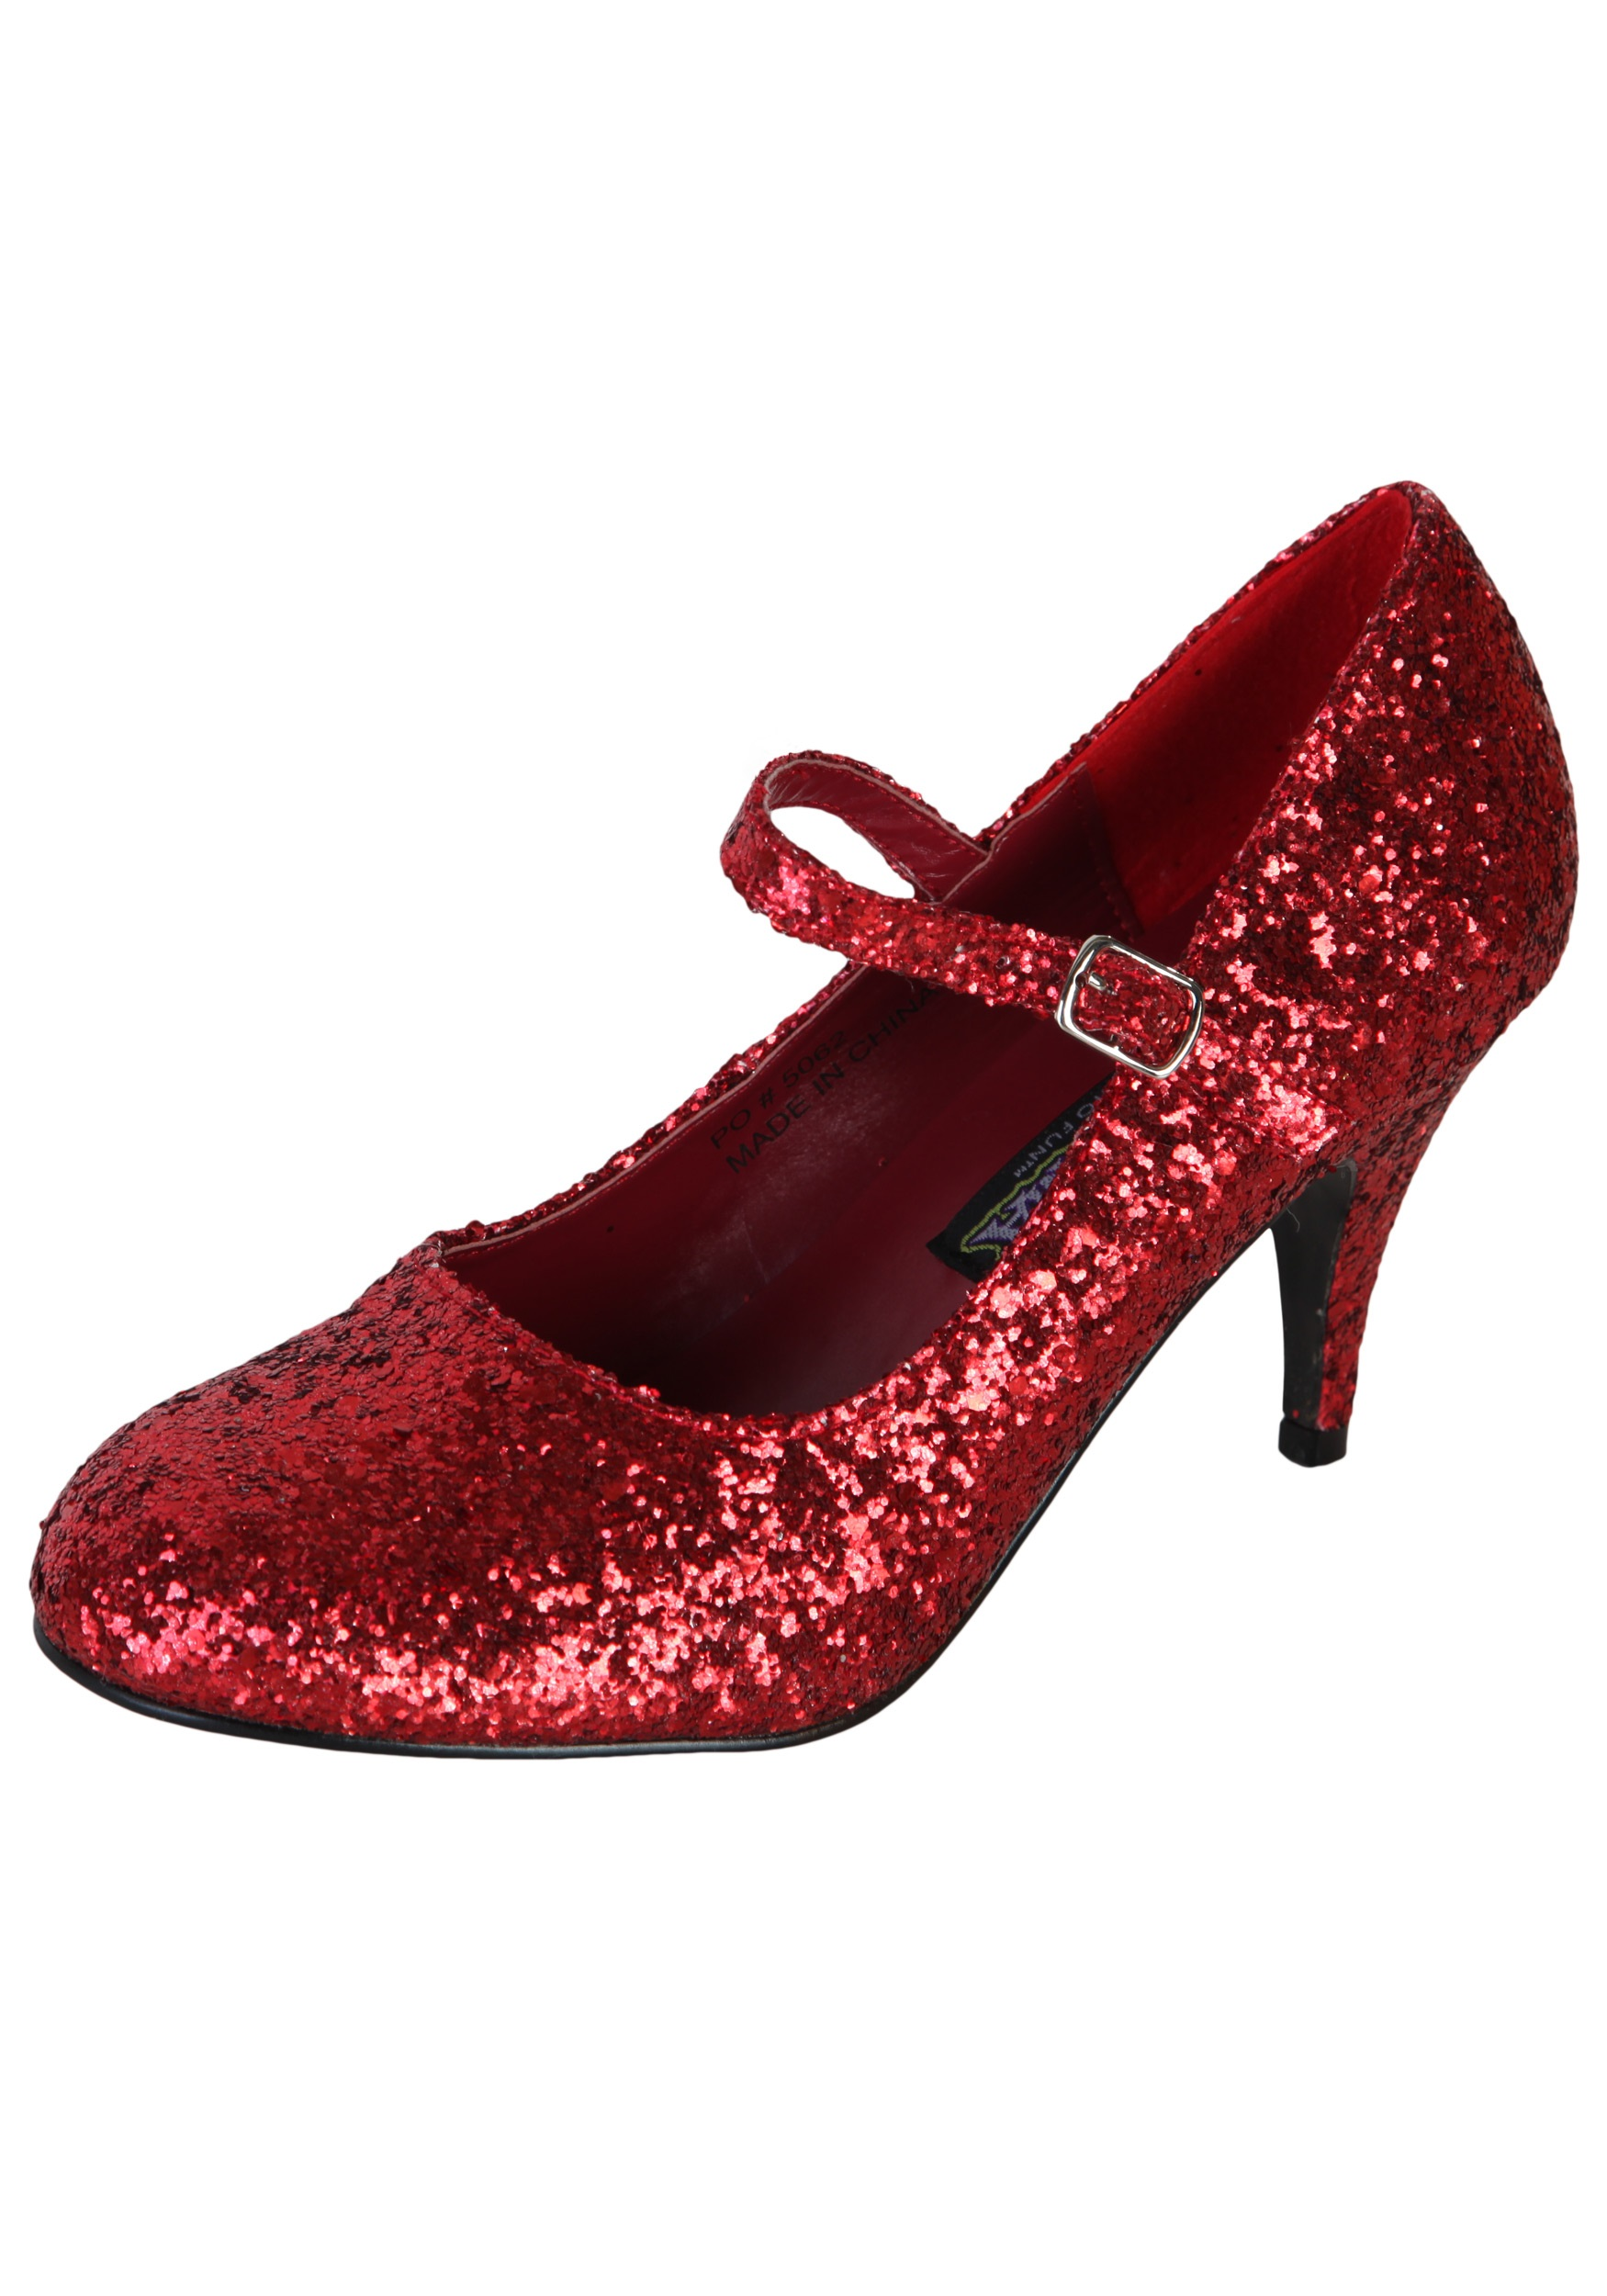 Red Sparkle Shoes Size